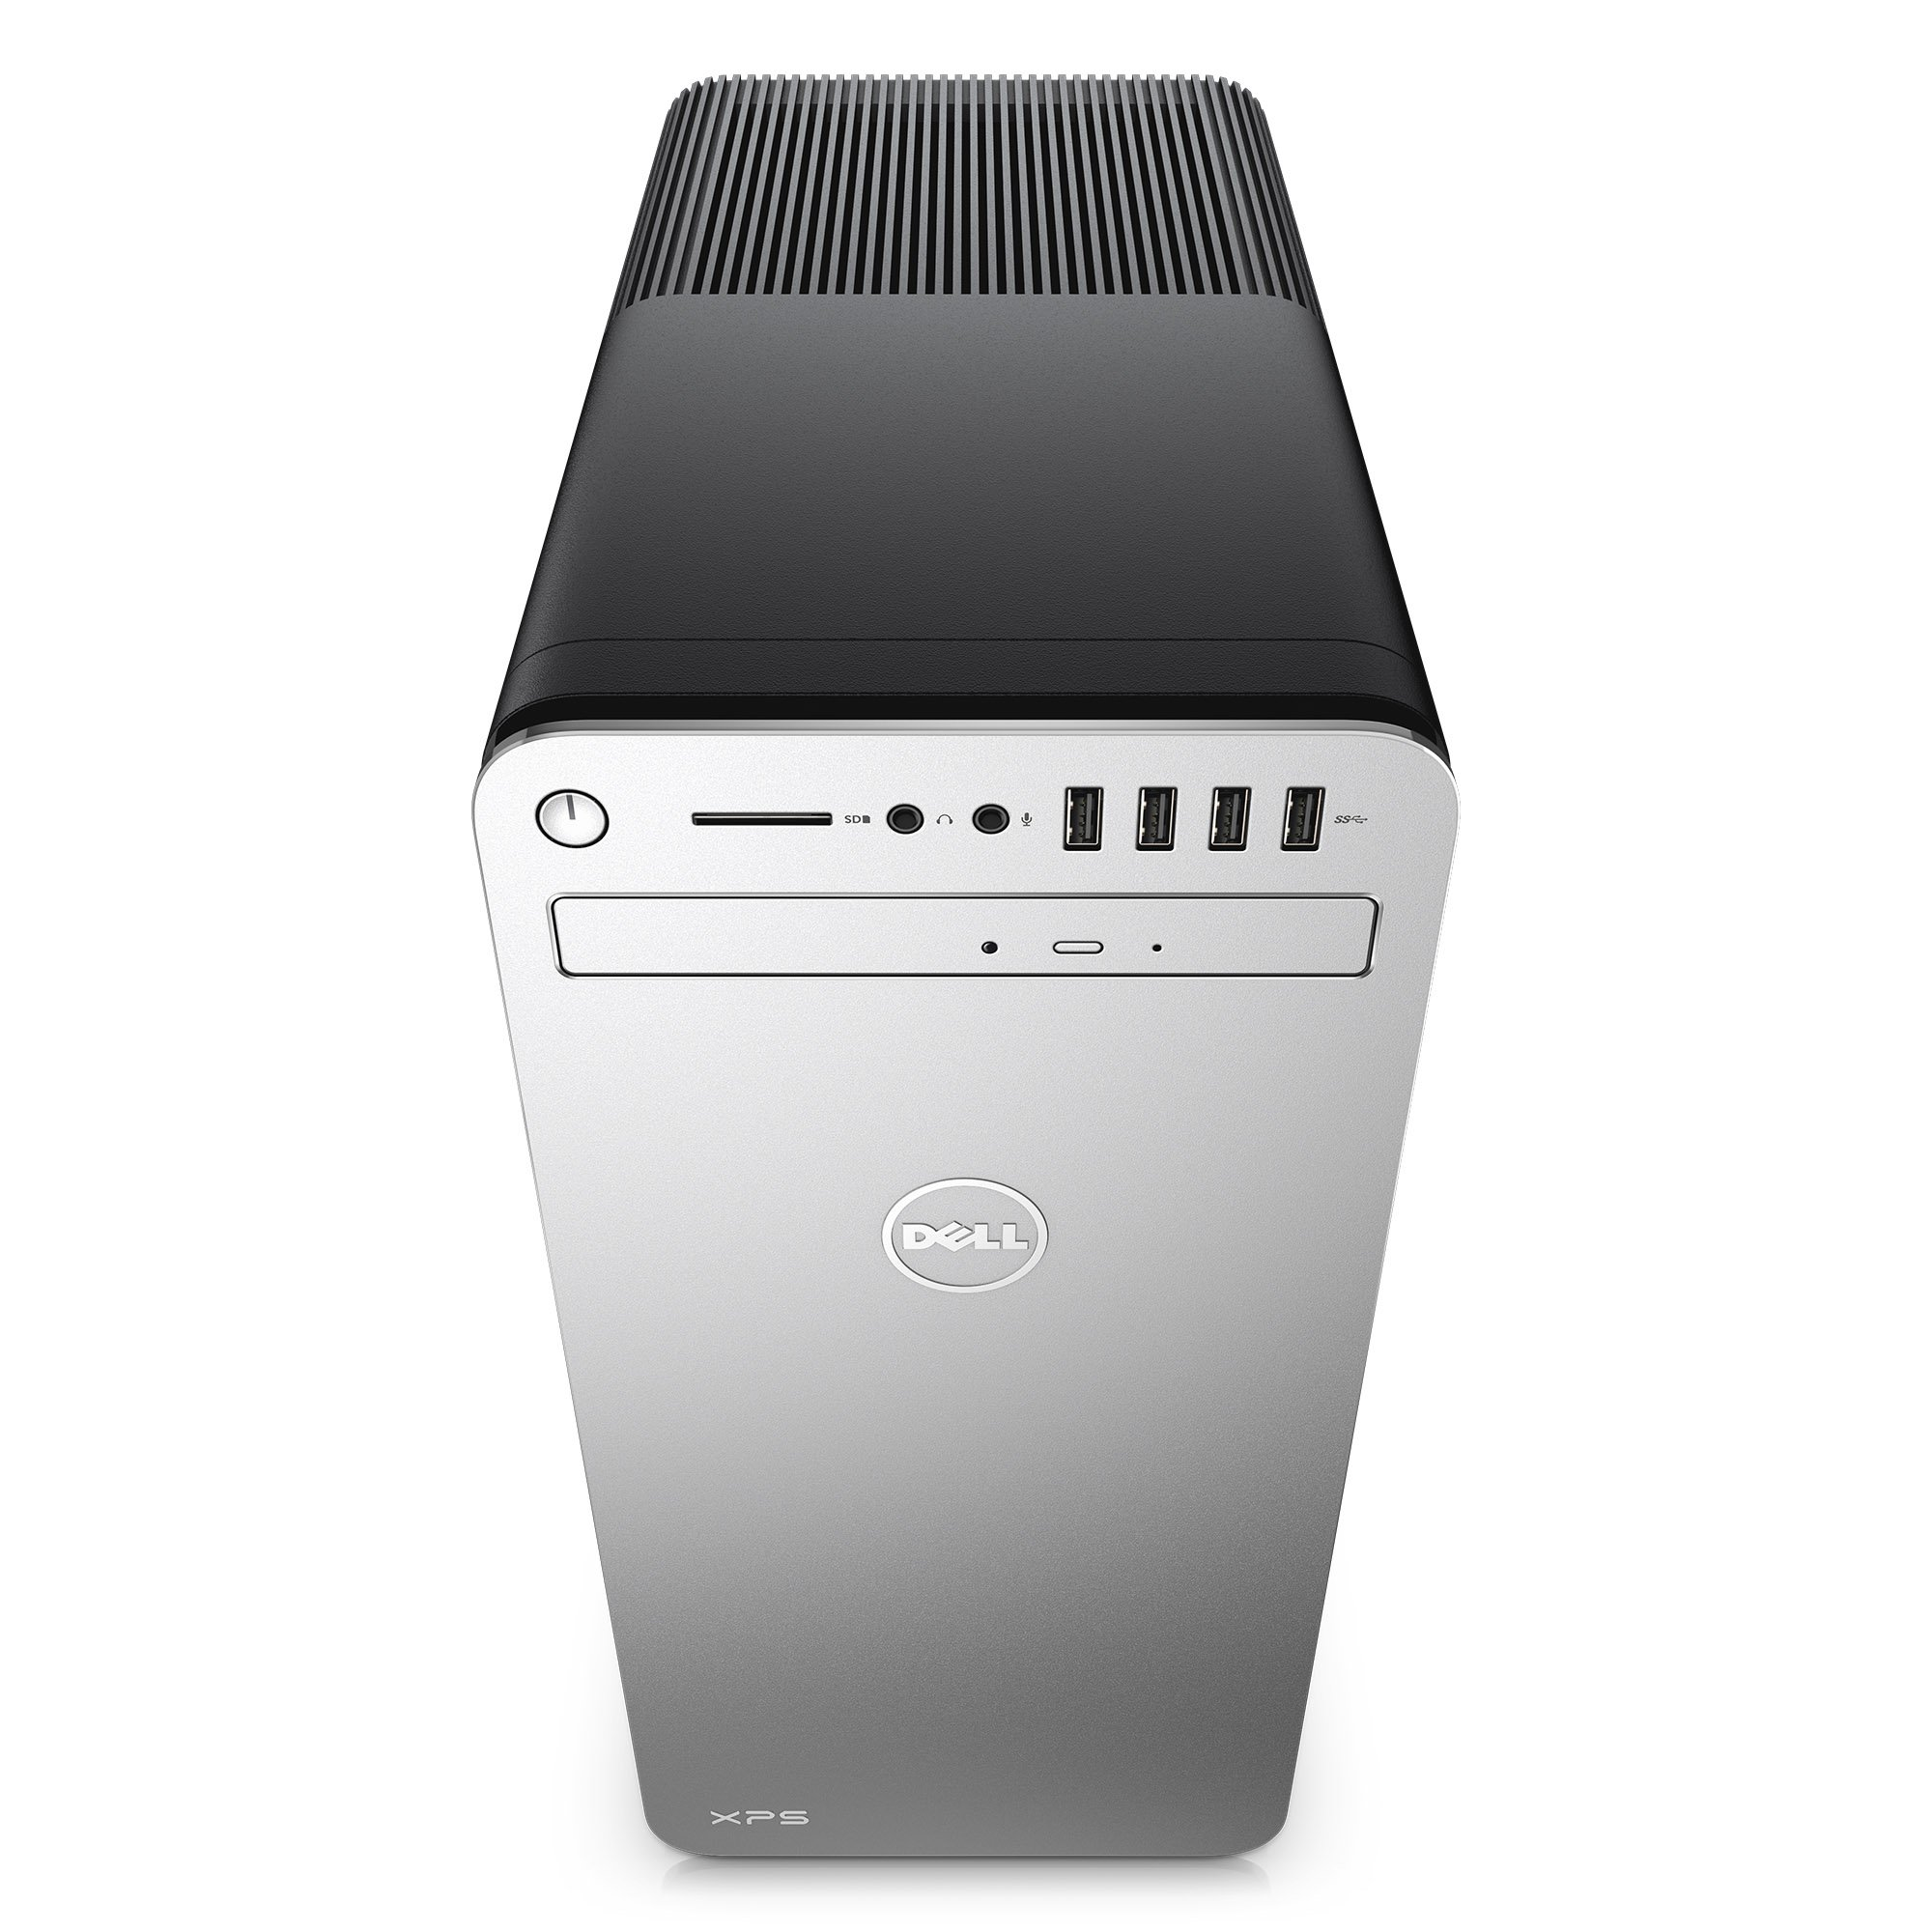 Dell XPS 8920 XPS8920-7529SLV-PUS Tower Desktop (Silver) by Dell (Image #4)